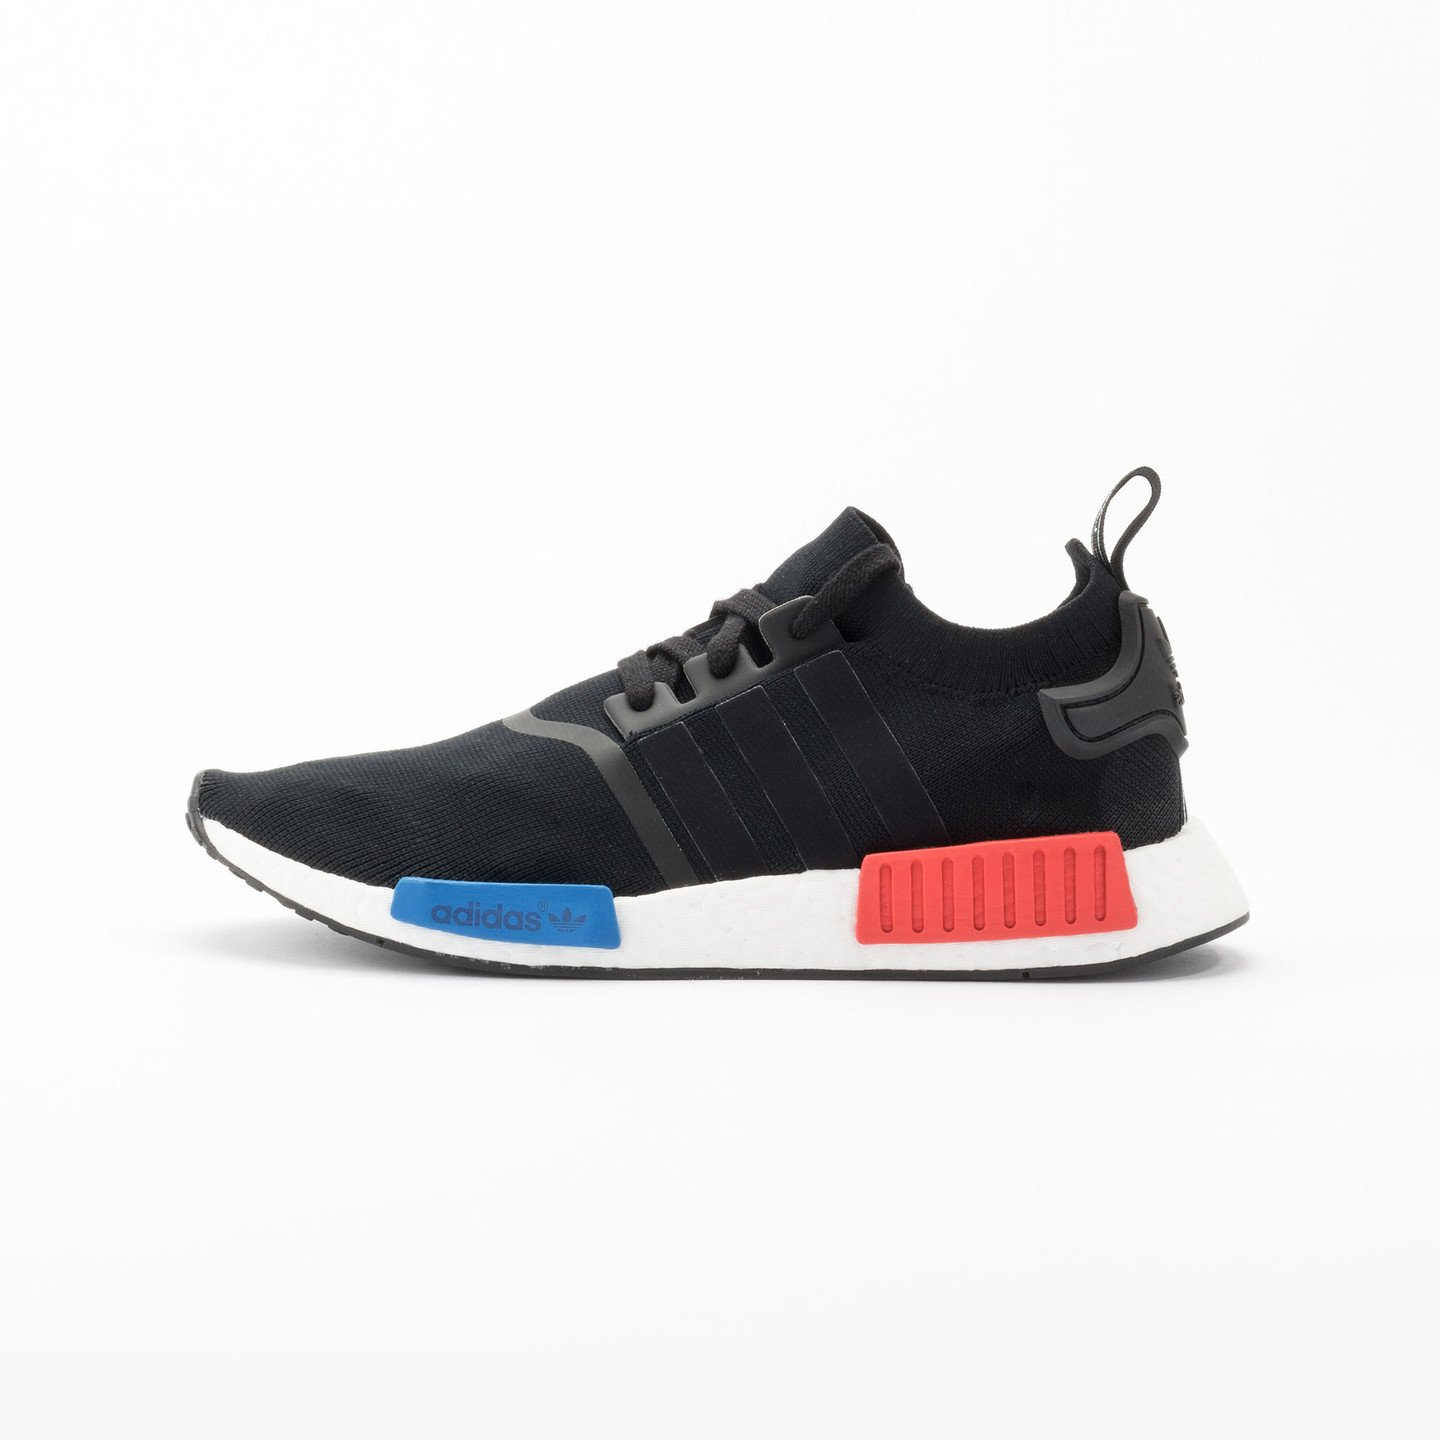 Adidas NMD Runner PK Primeknit Black / Red / Blue / White S79168-40.66